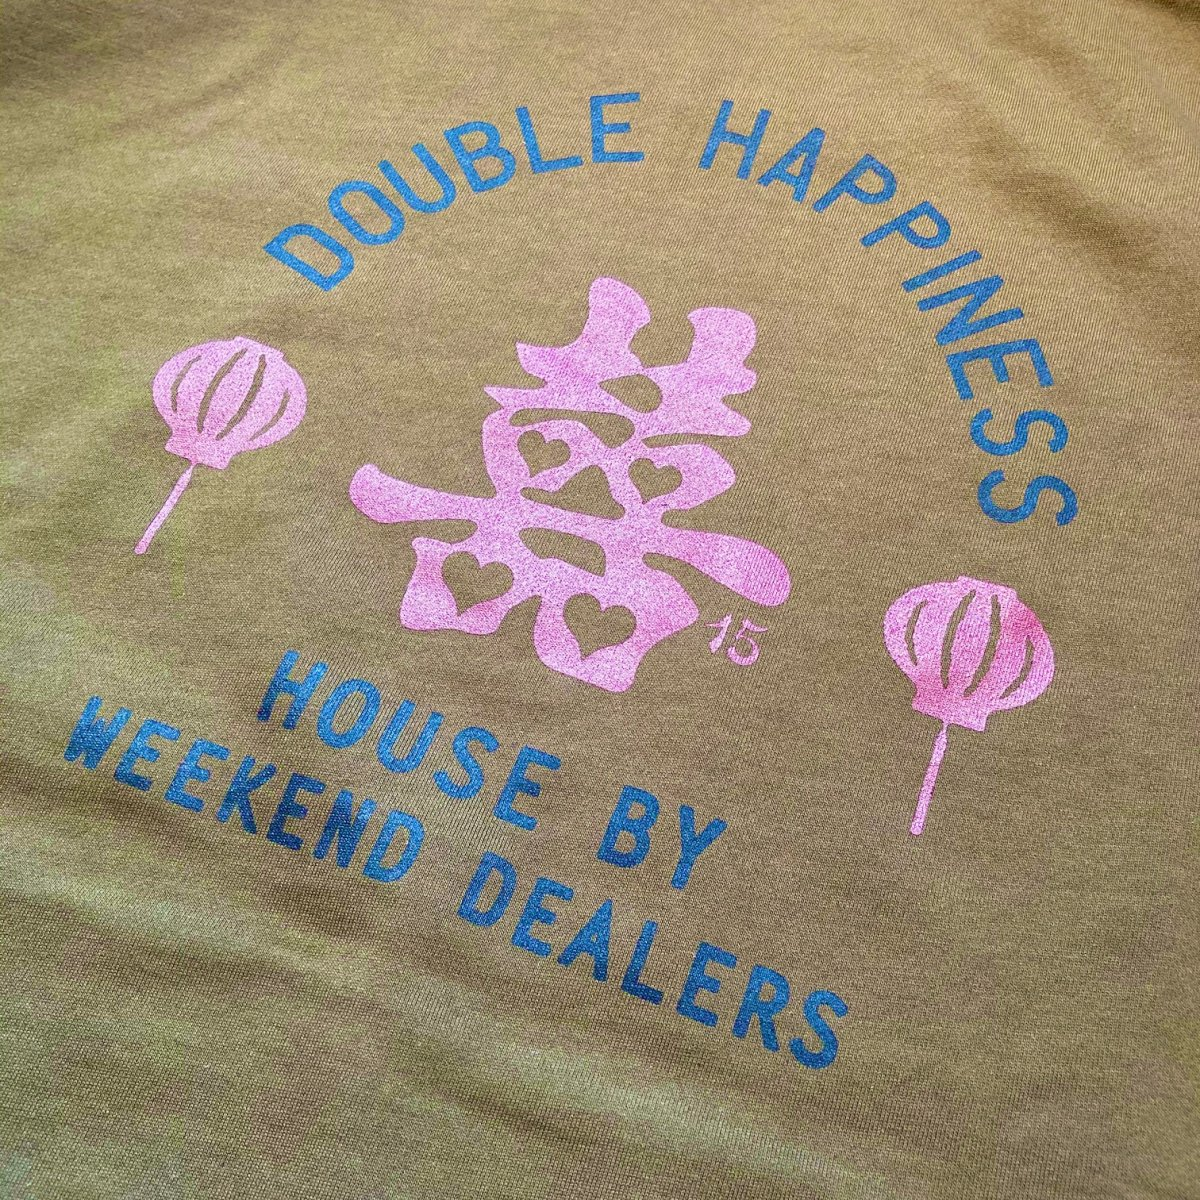 <img class='new_mark_img1' src='https://img.shop-pro.jp/img/new/icons3.gif' style='border:none;display:inline;margin:0px;padding:0px;width:auto;' />Black Weirdos × HOUSE by WEEKEND DEALERS 15th ANNIVERSARYCREW NECK SWEAT 【OLIVE】